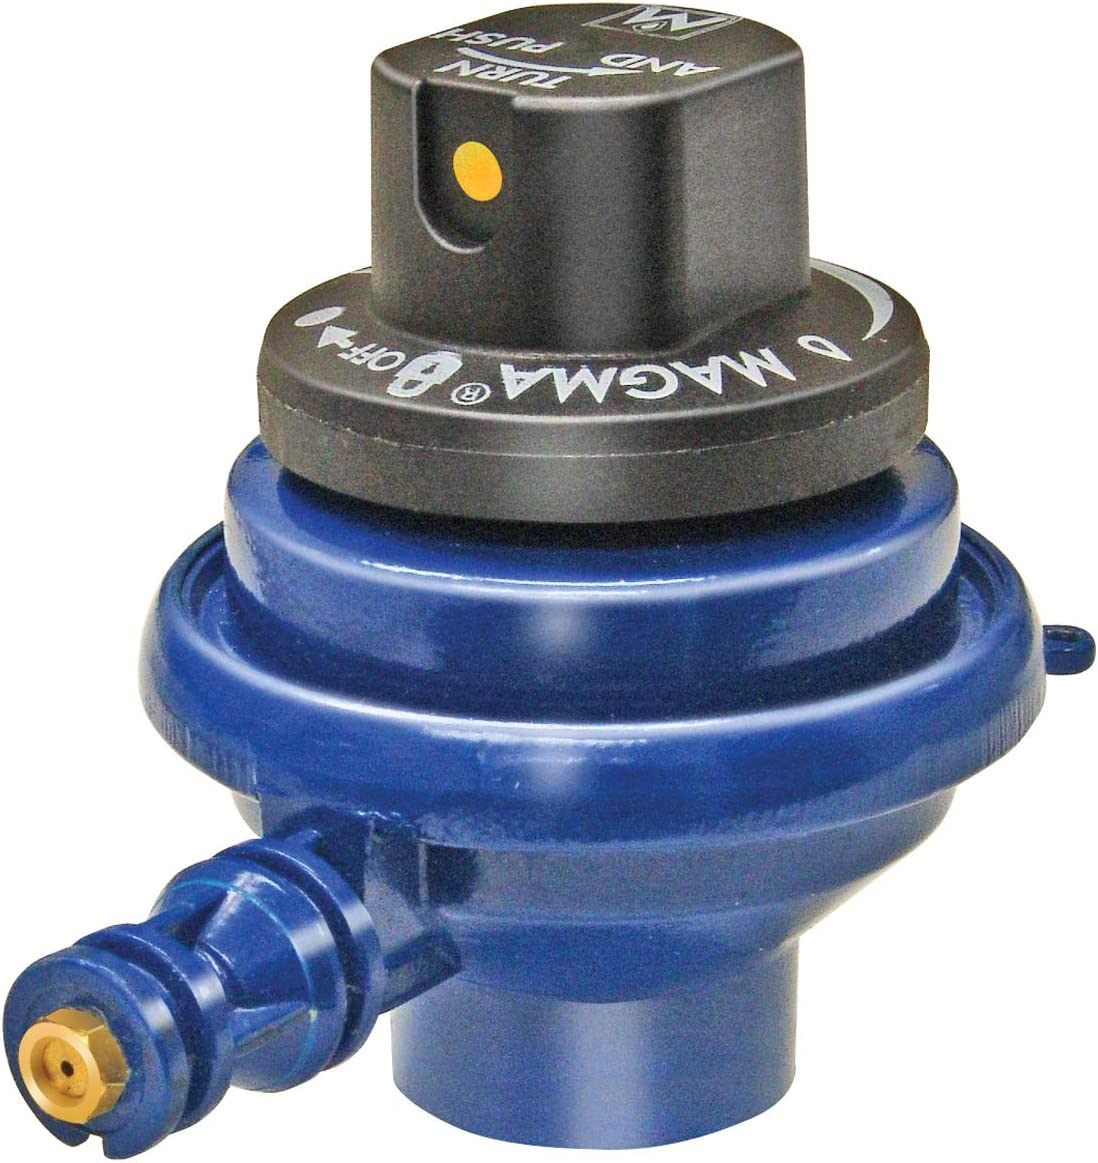 Magma Products, Control Valve Regulator, Type 1, Replacement Parts